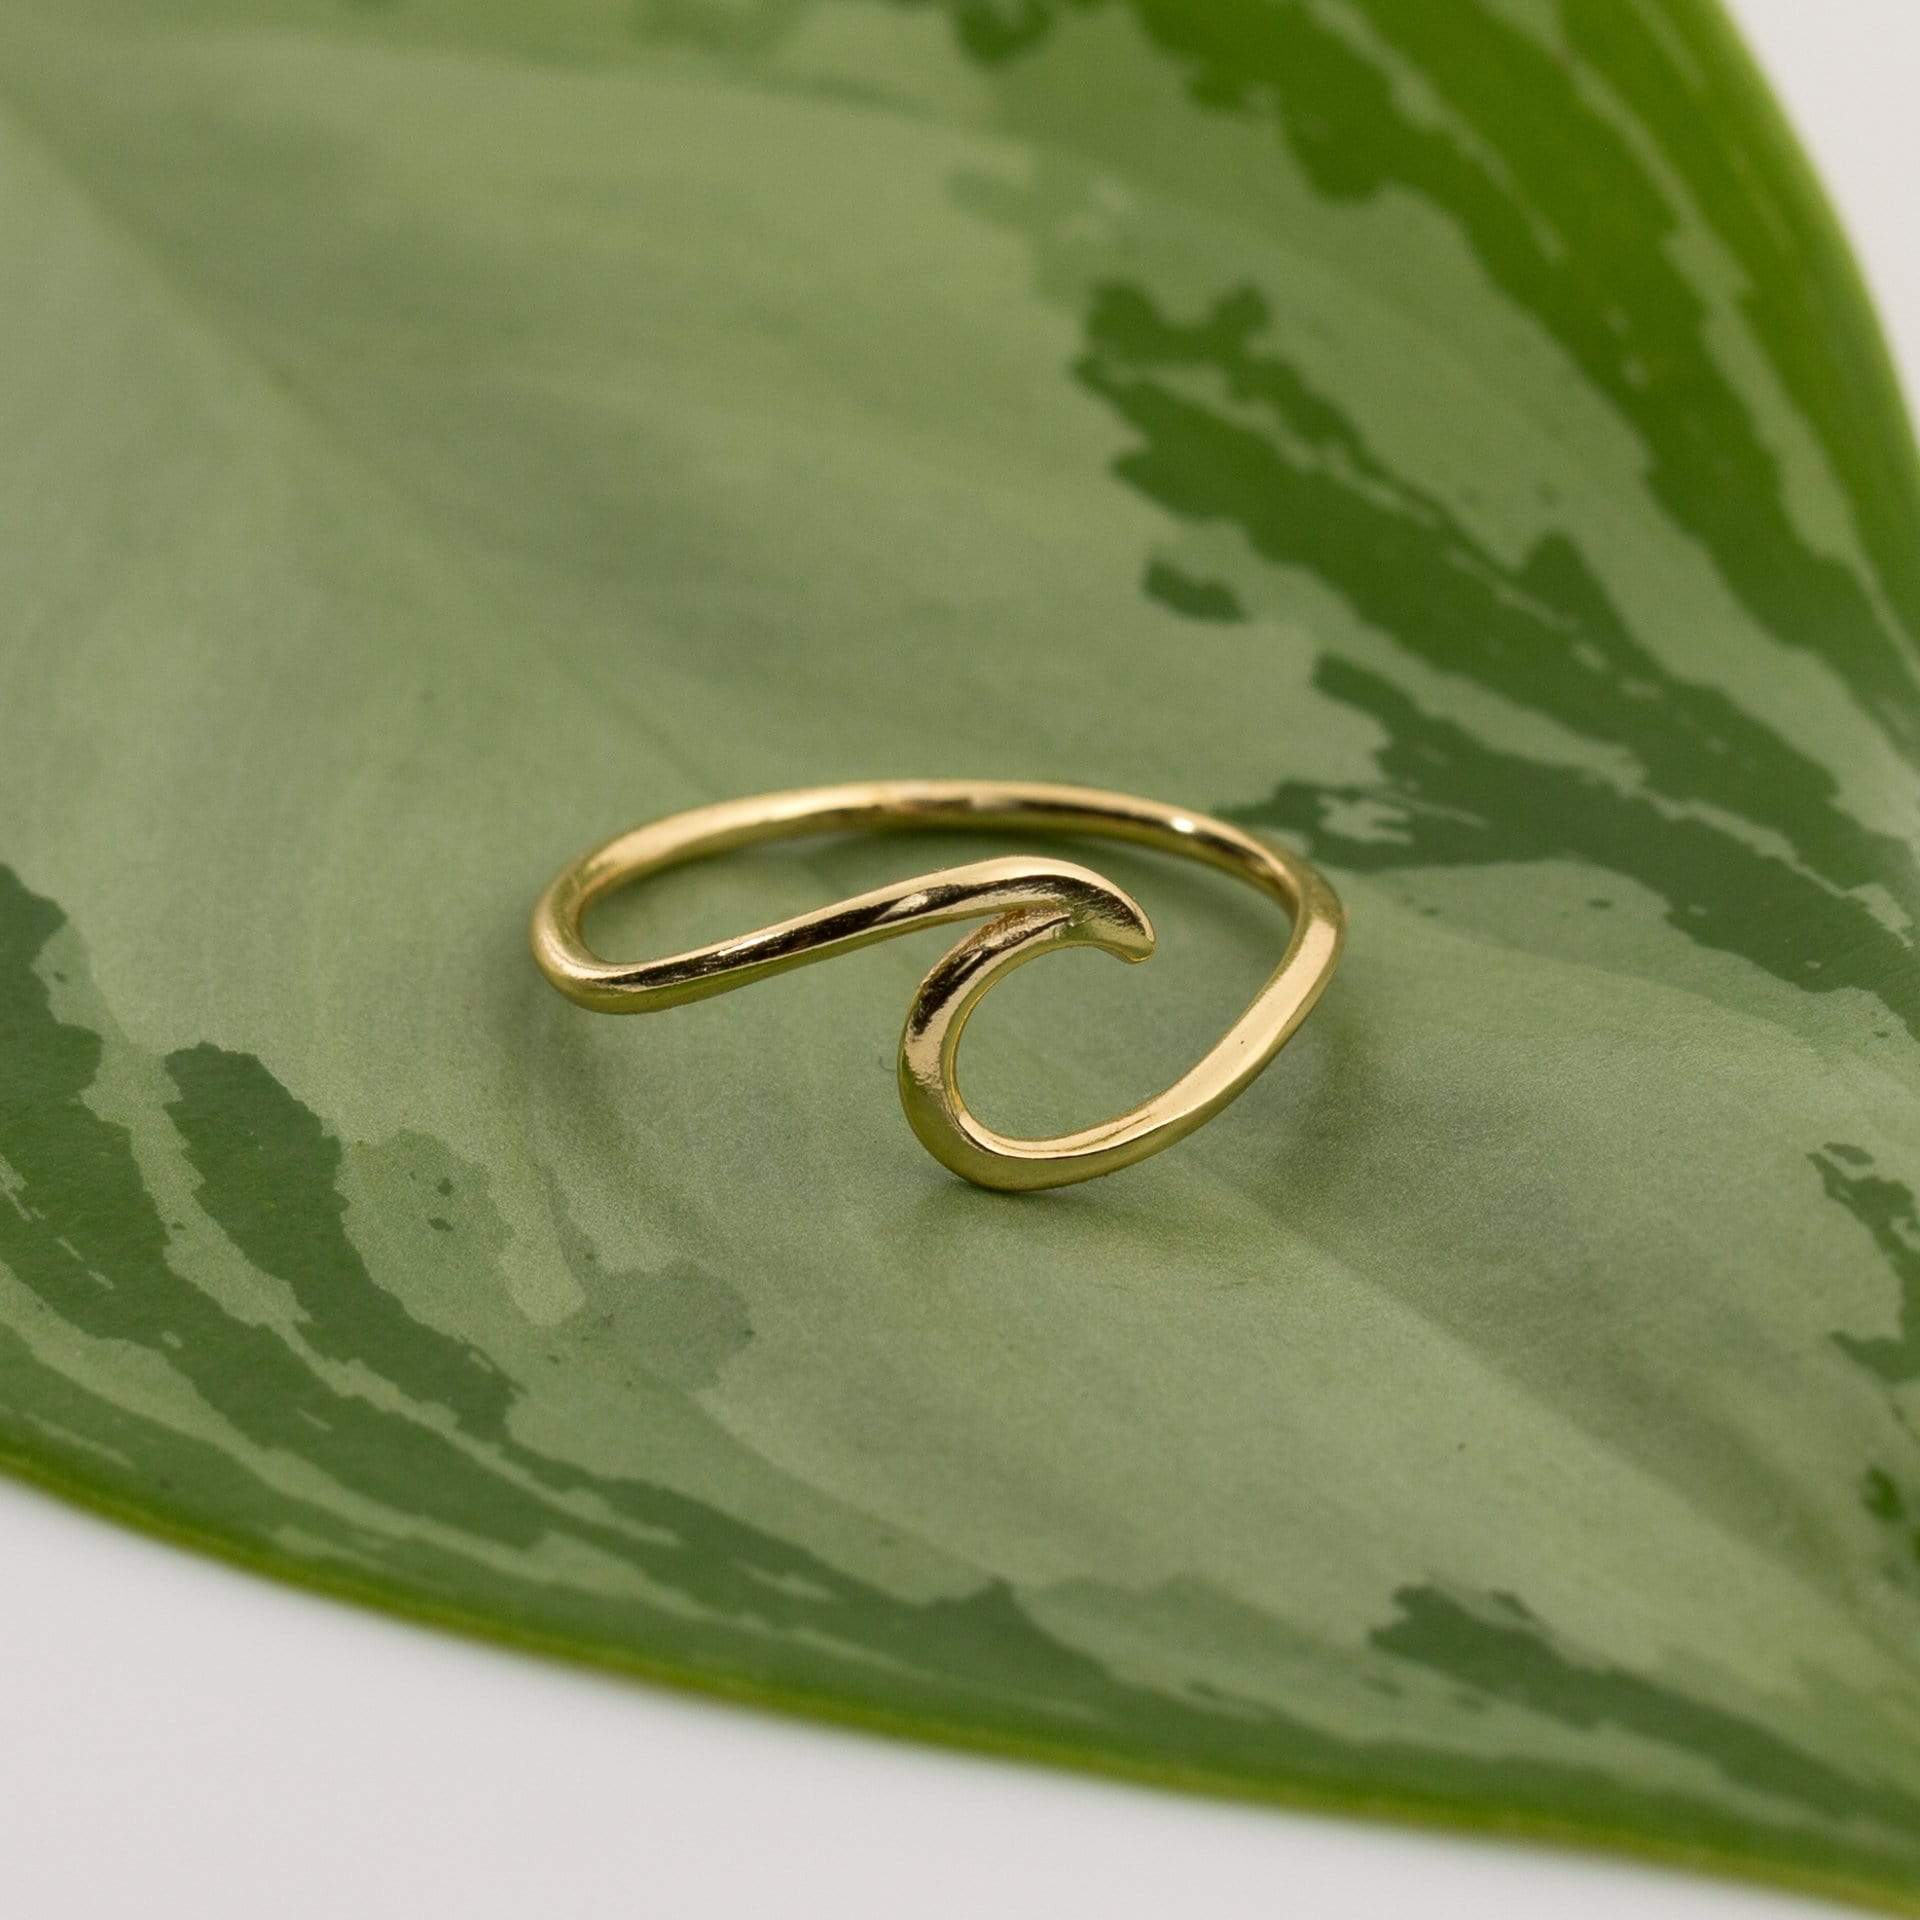 Subject 2 Change Ring 6 / Gold Wave Ring